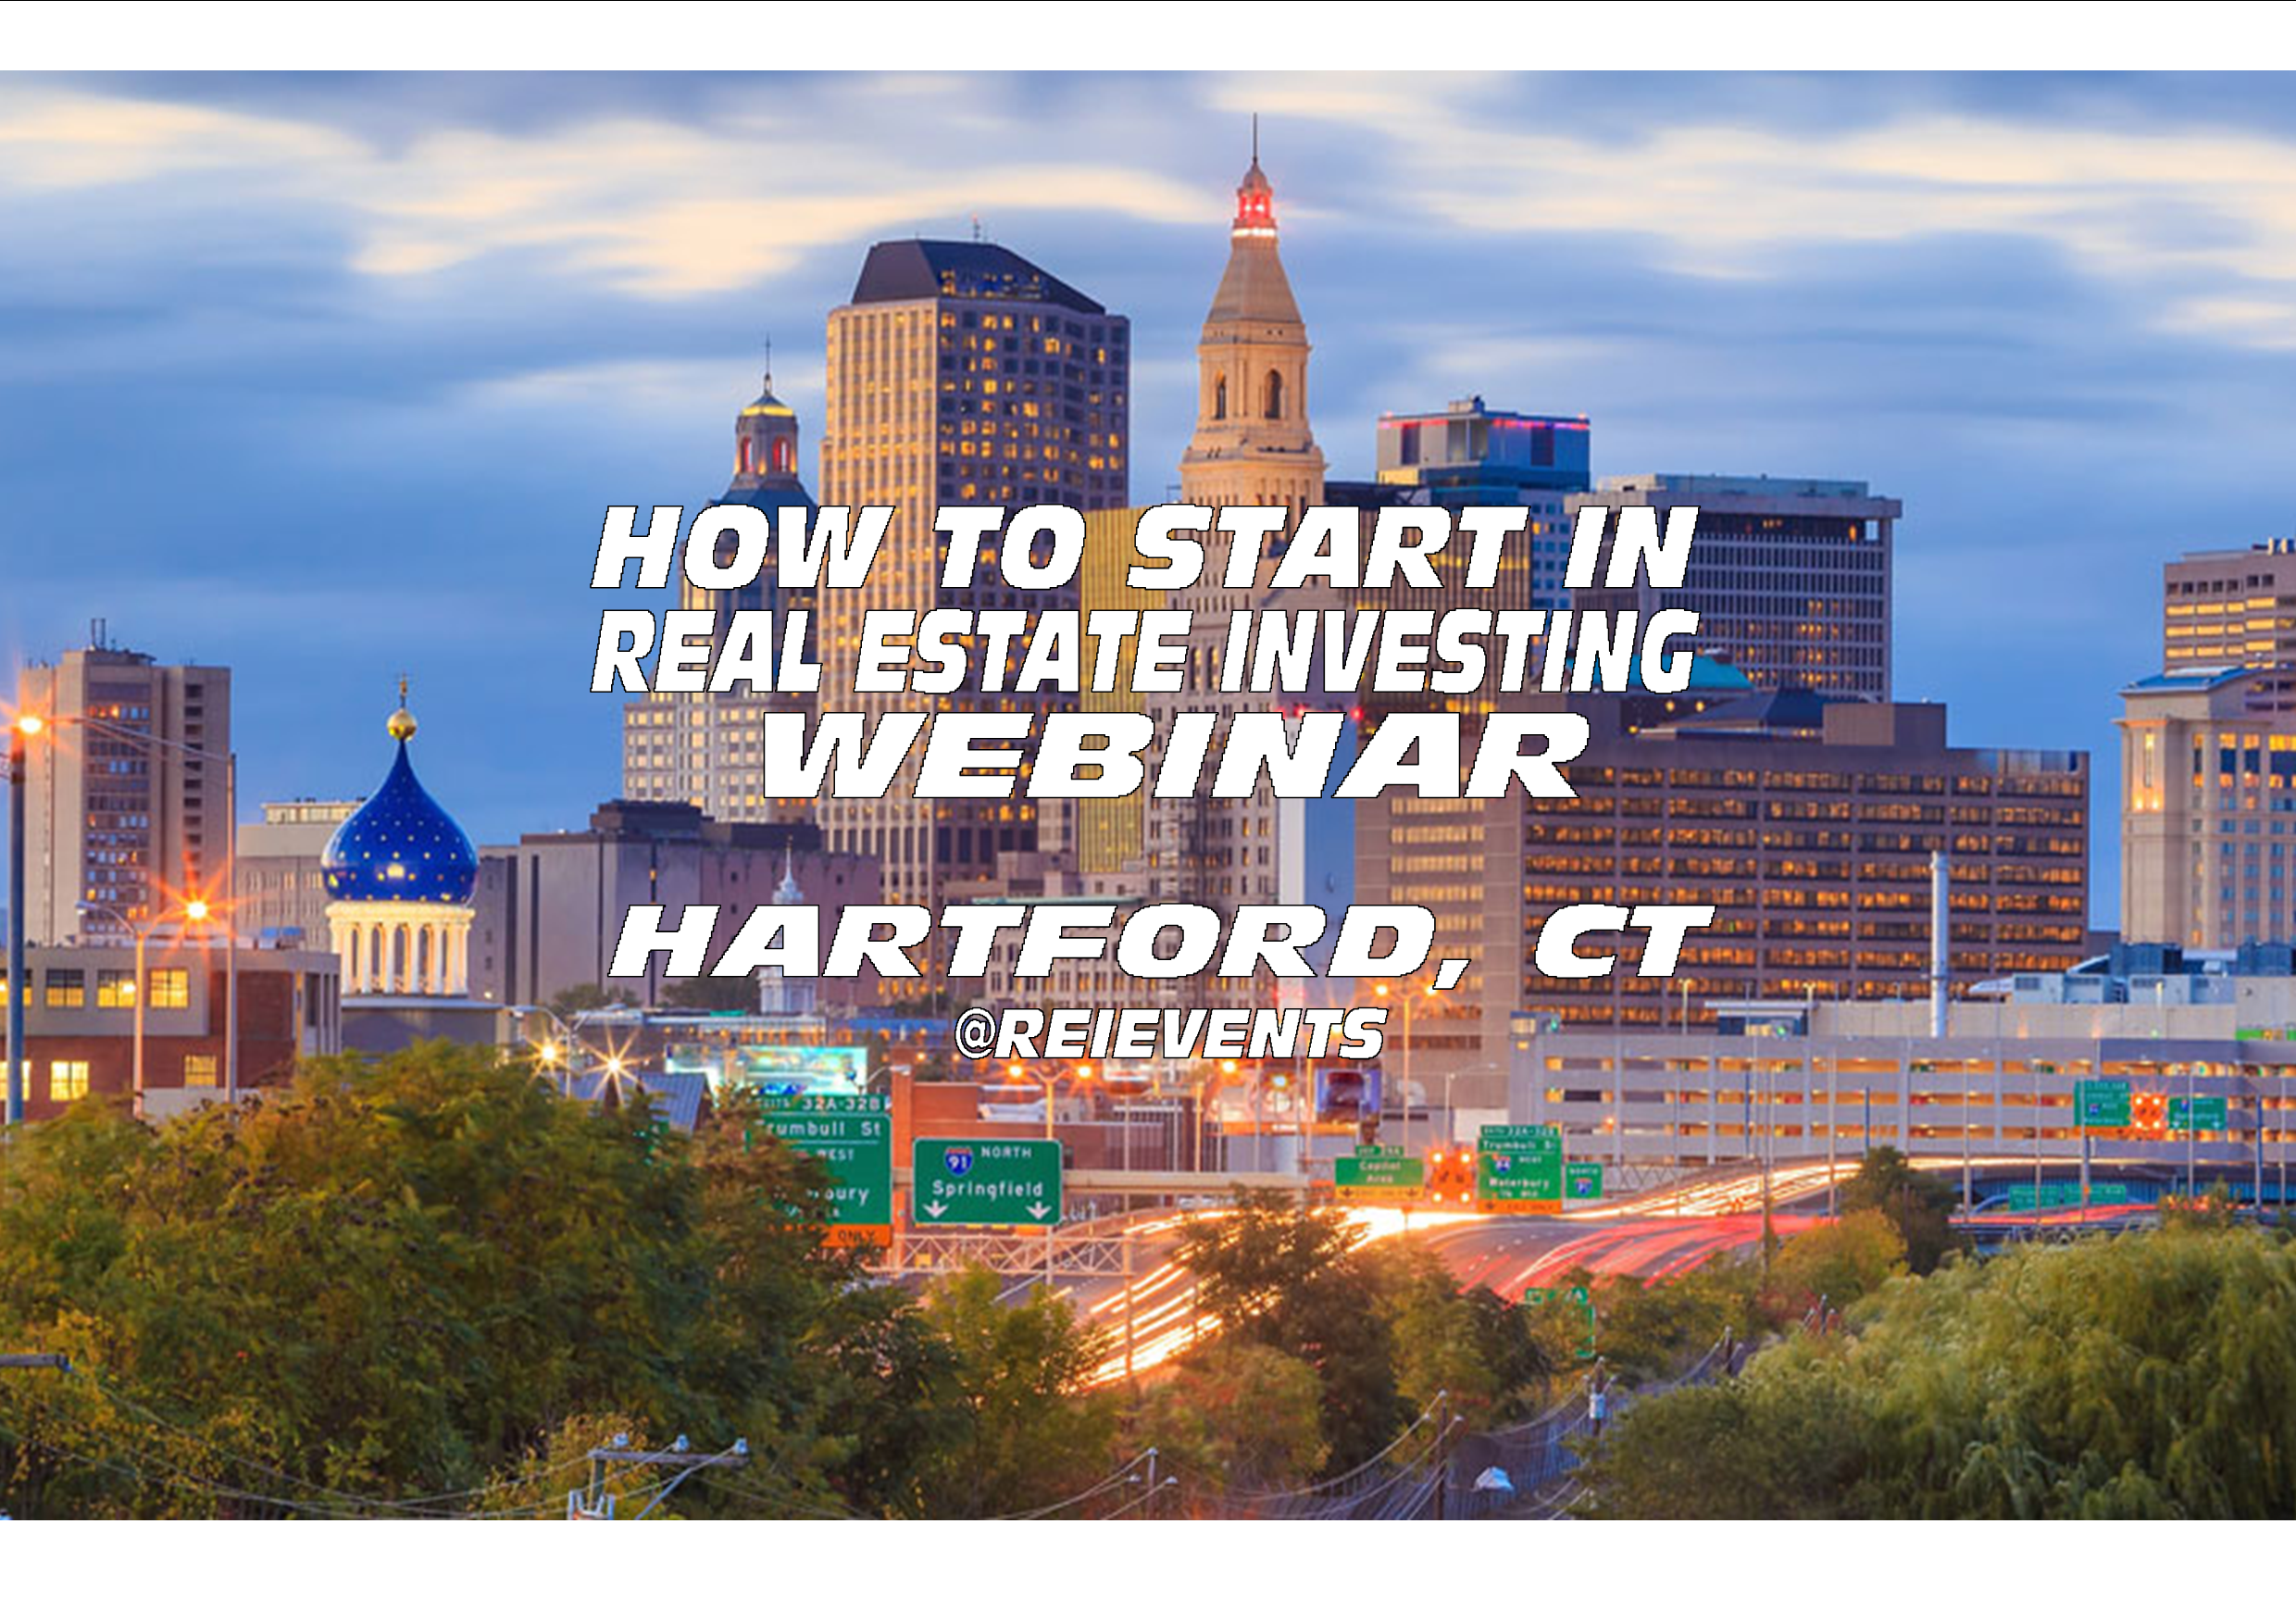 HOW TO START IN REAL ESTATE INVESTING - WEBINAR - HARTFORD, CT